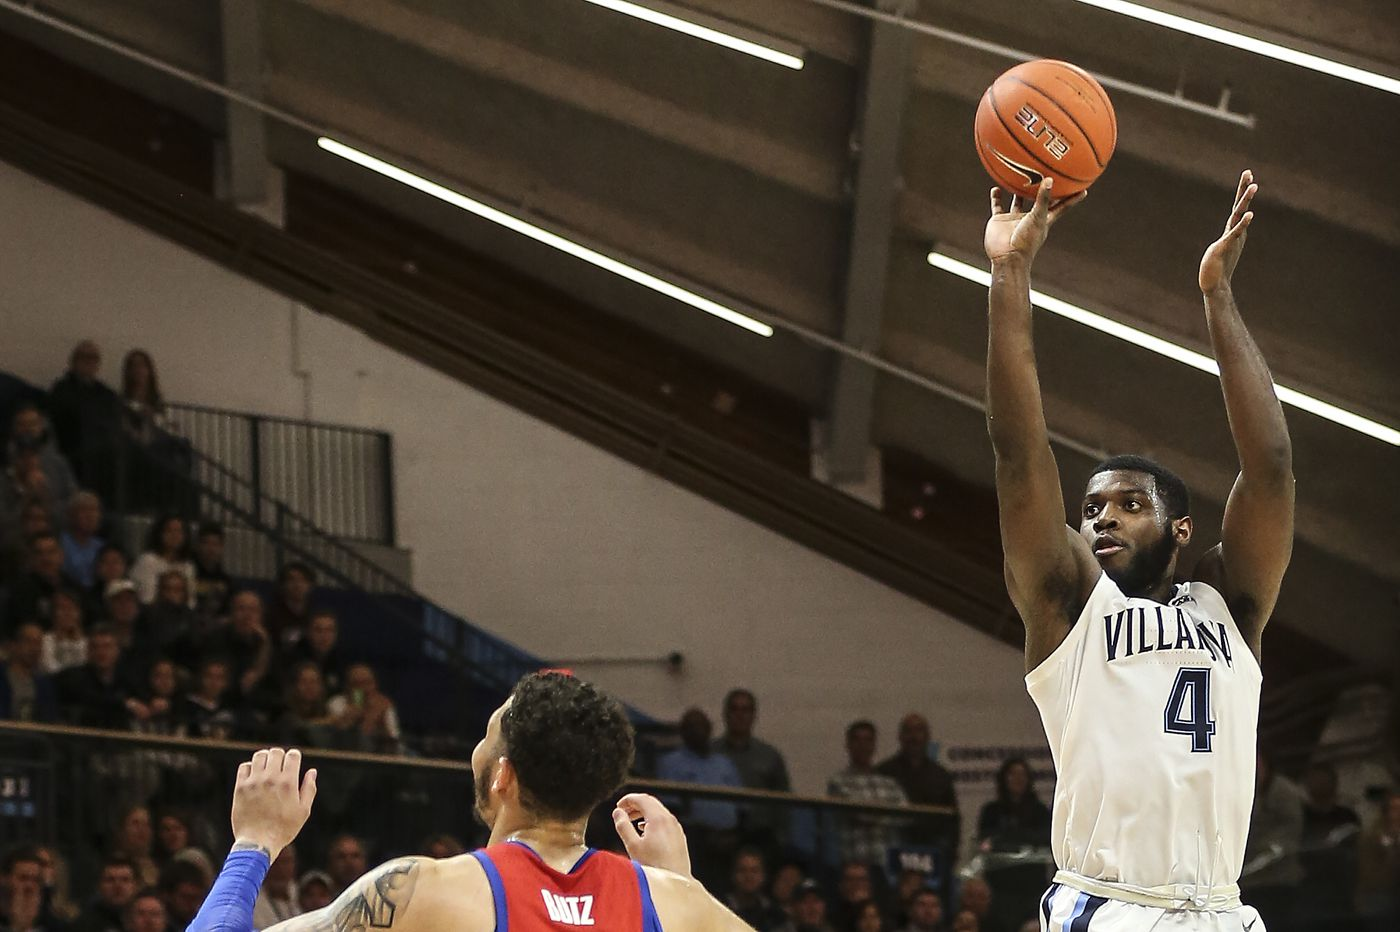 Villanova recovers from early deficits, defeats DePaul, 73-68